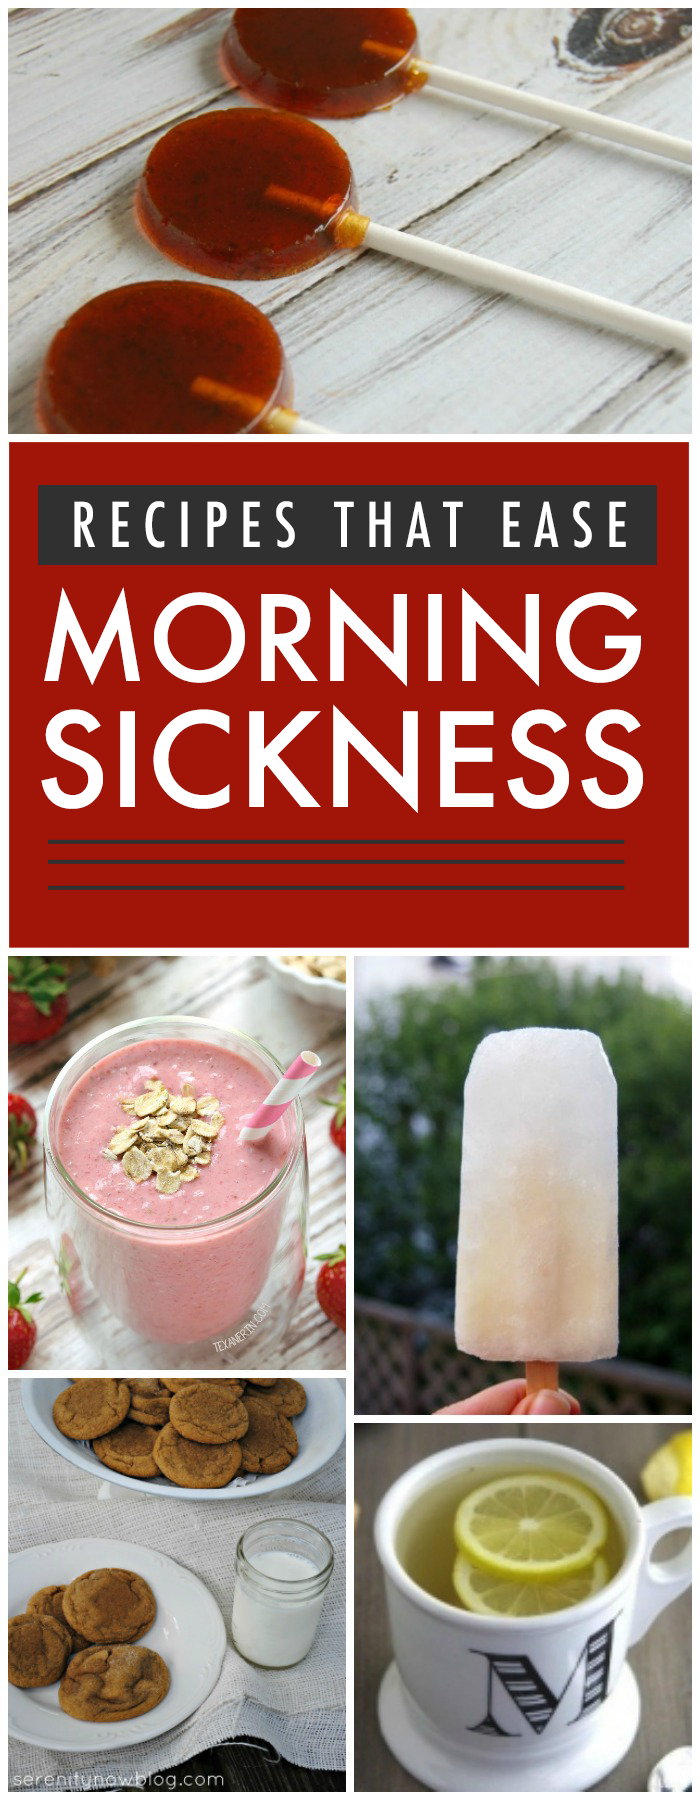 Italian Boy Name: 10 Recipes That Help Ease Morning Sickness